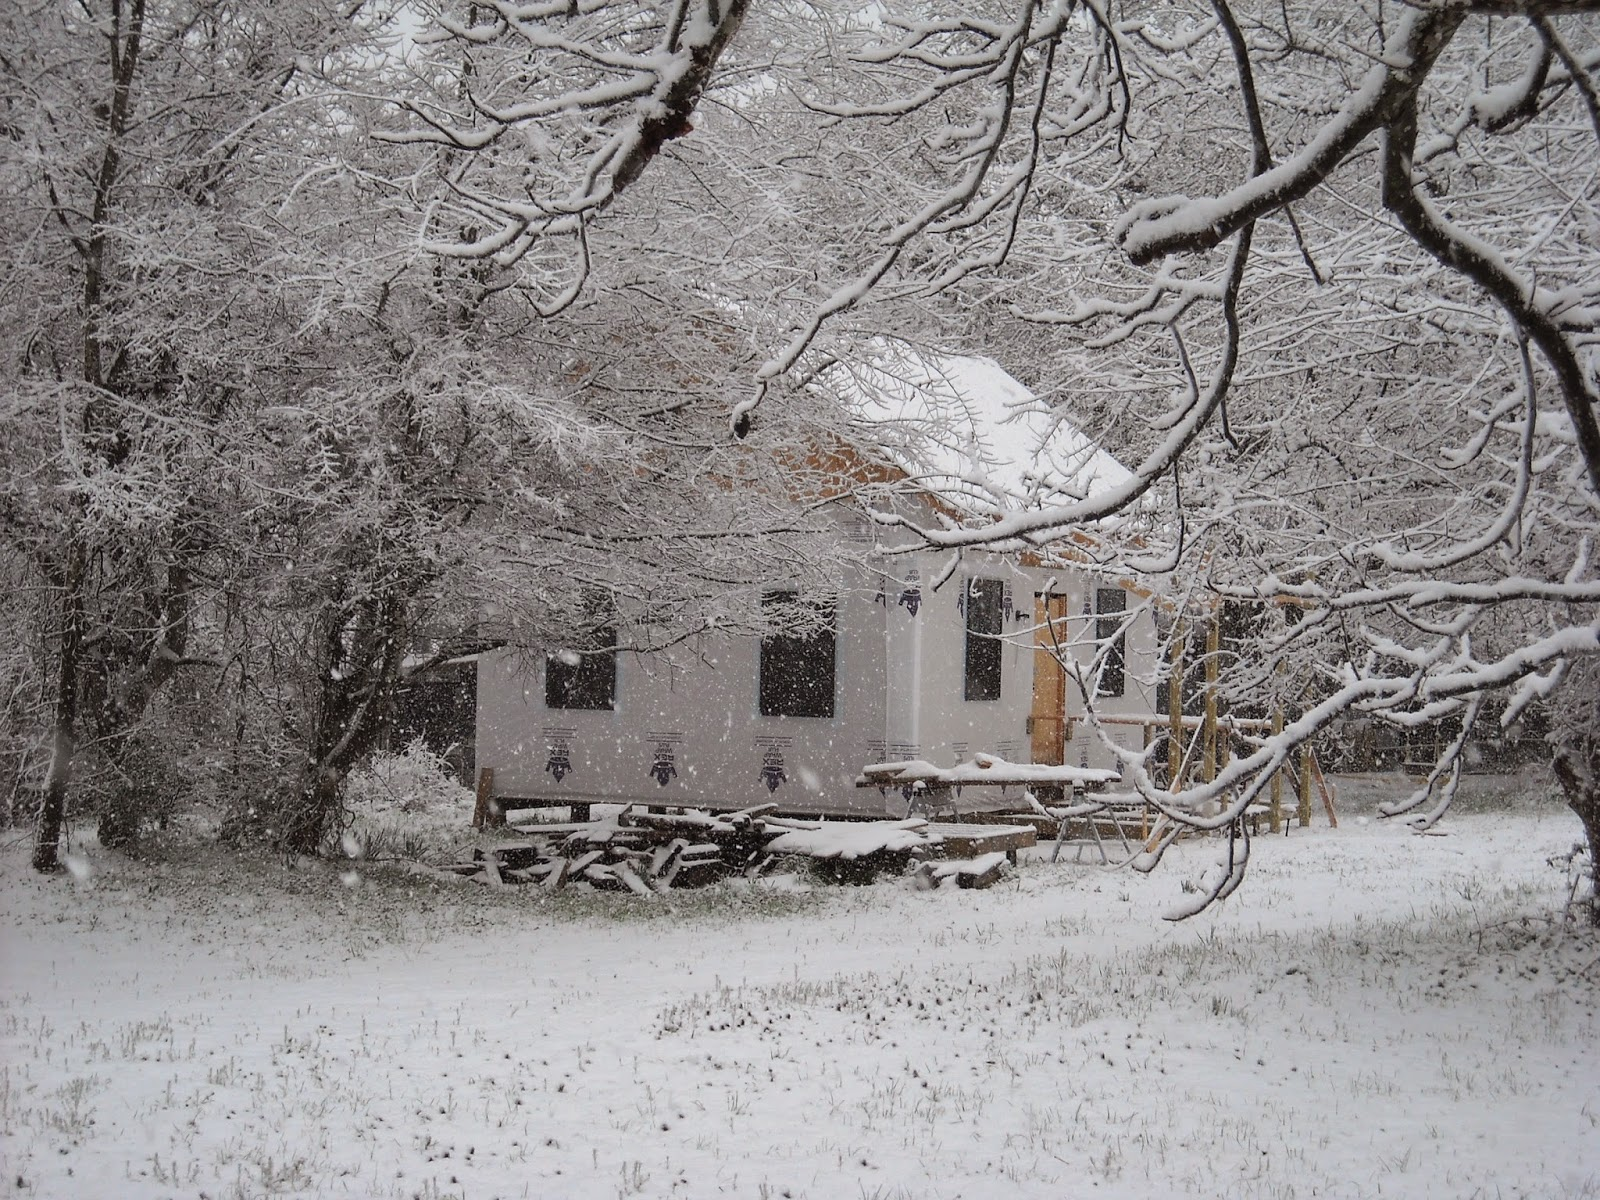 http://rockingchairwriter.blogspot.com/2015/03/when-they-say-when-texas-freezes-overor.html